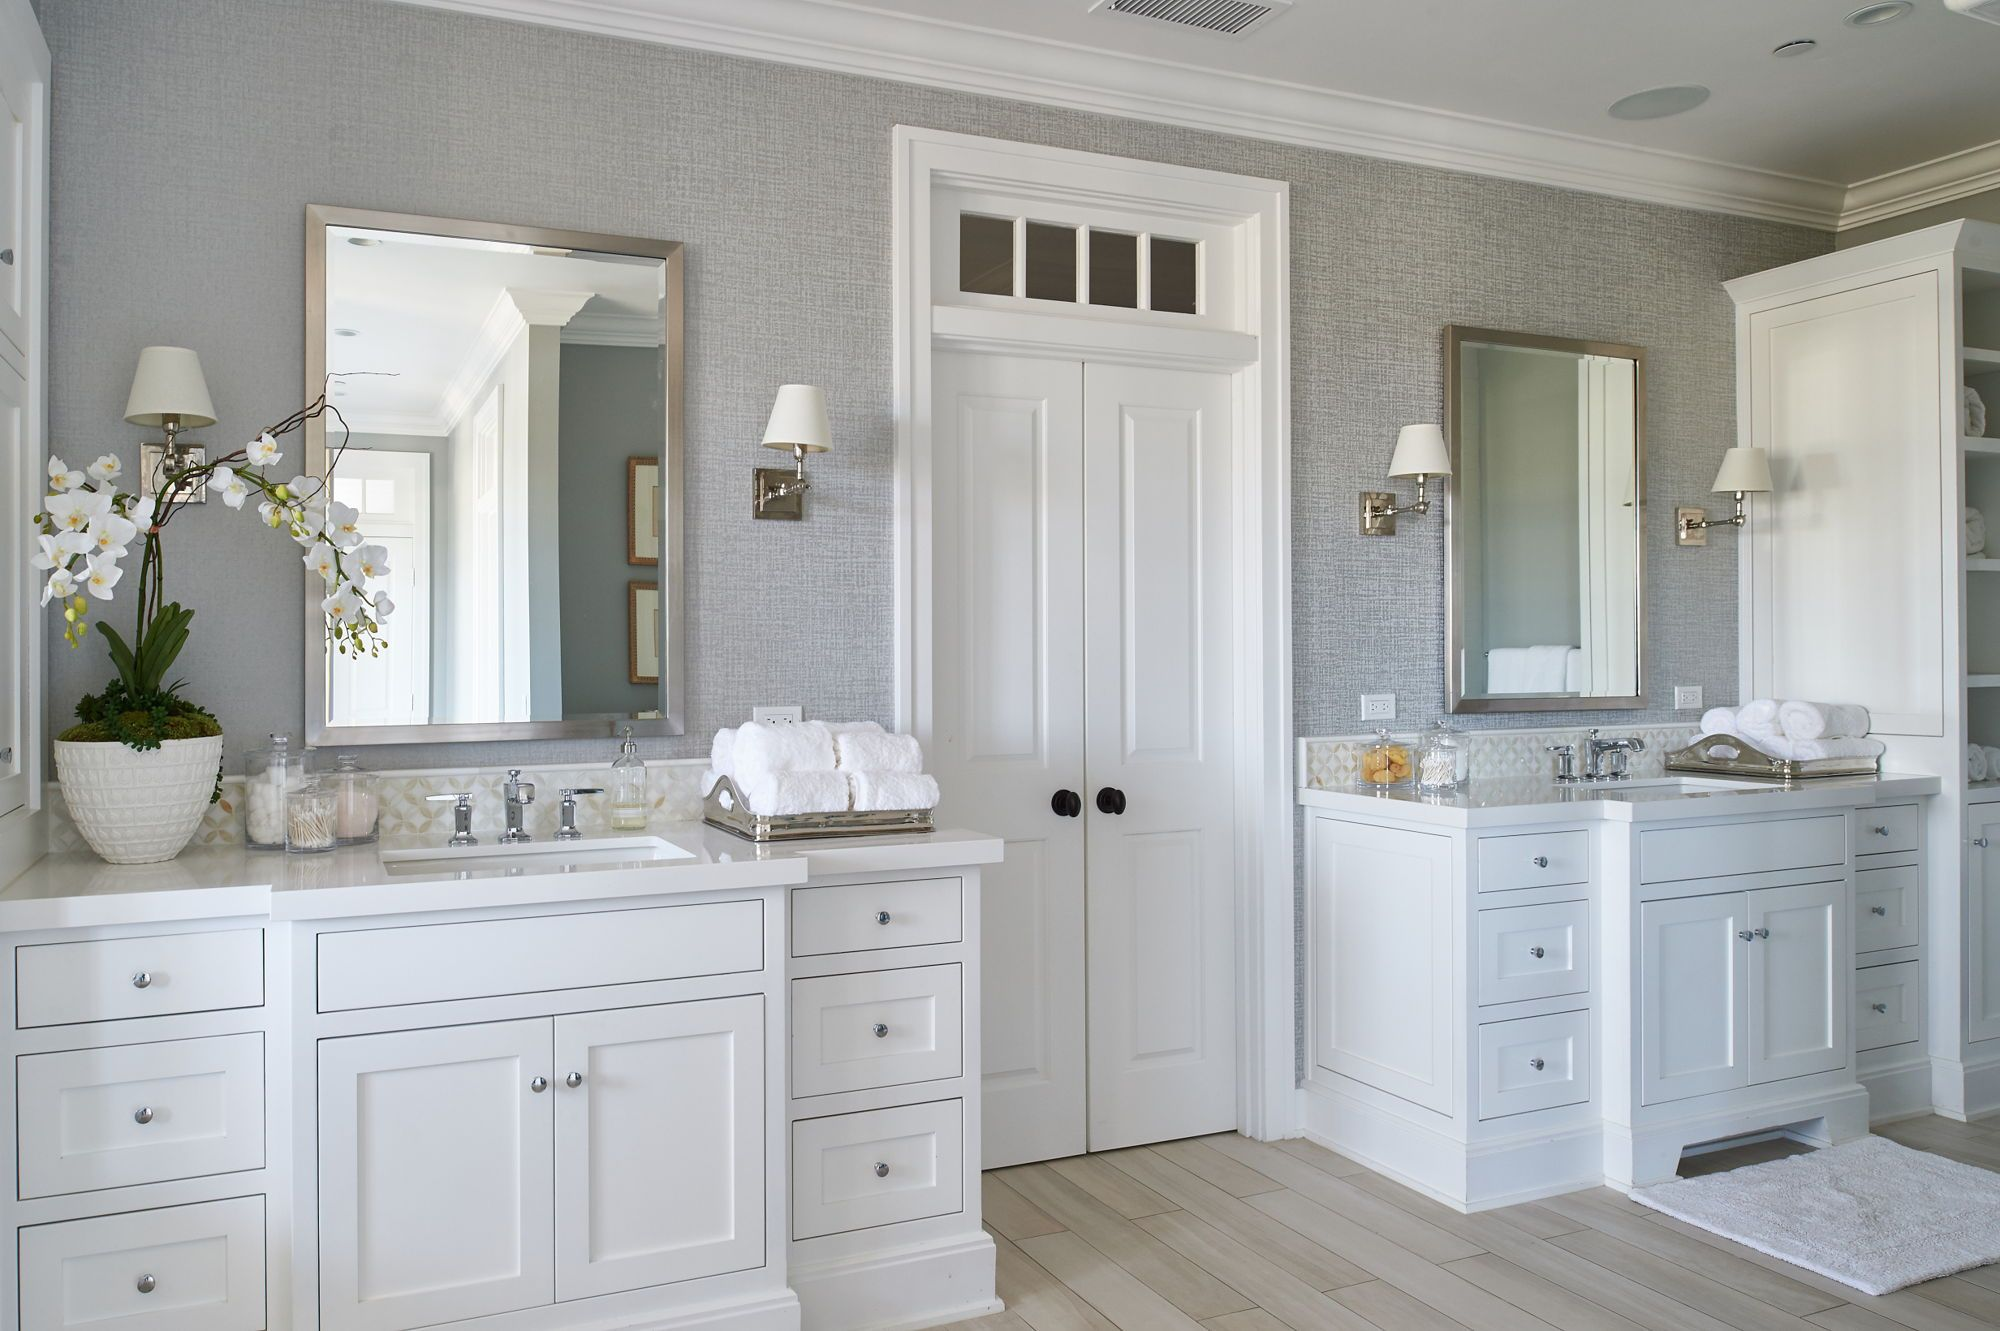 His And Her Vanities In A Large Master Bathroom White Vanities With Chrome Fixtures A Master Bathroom Design Farmhouse Master Bathroom Bathroom Remodel Master